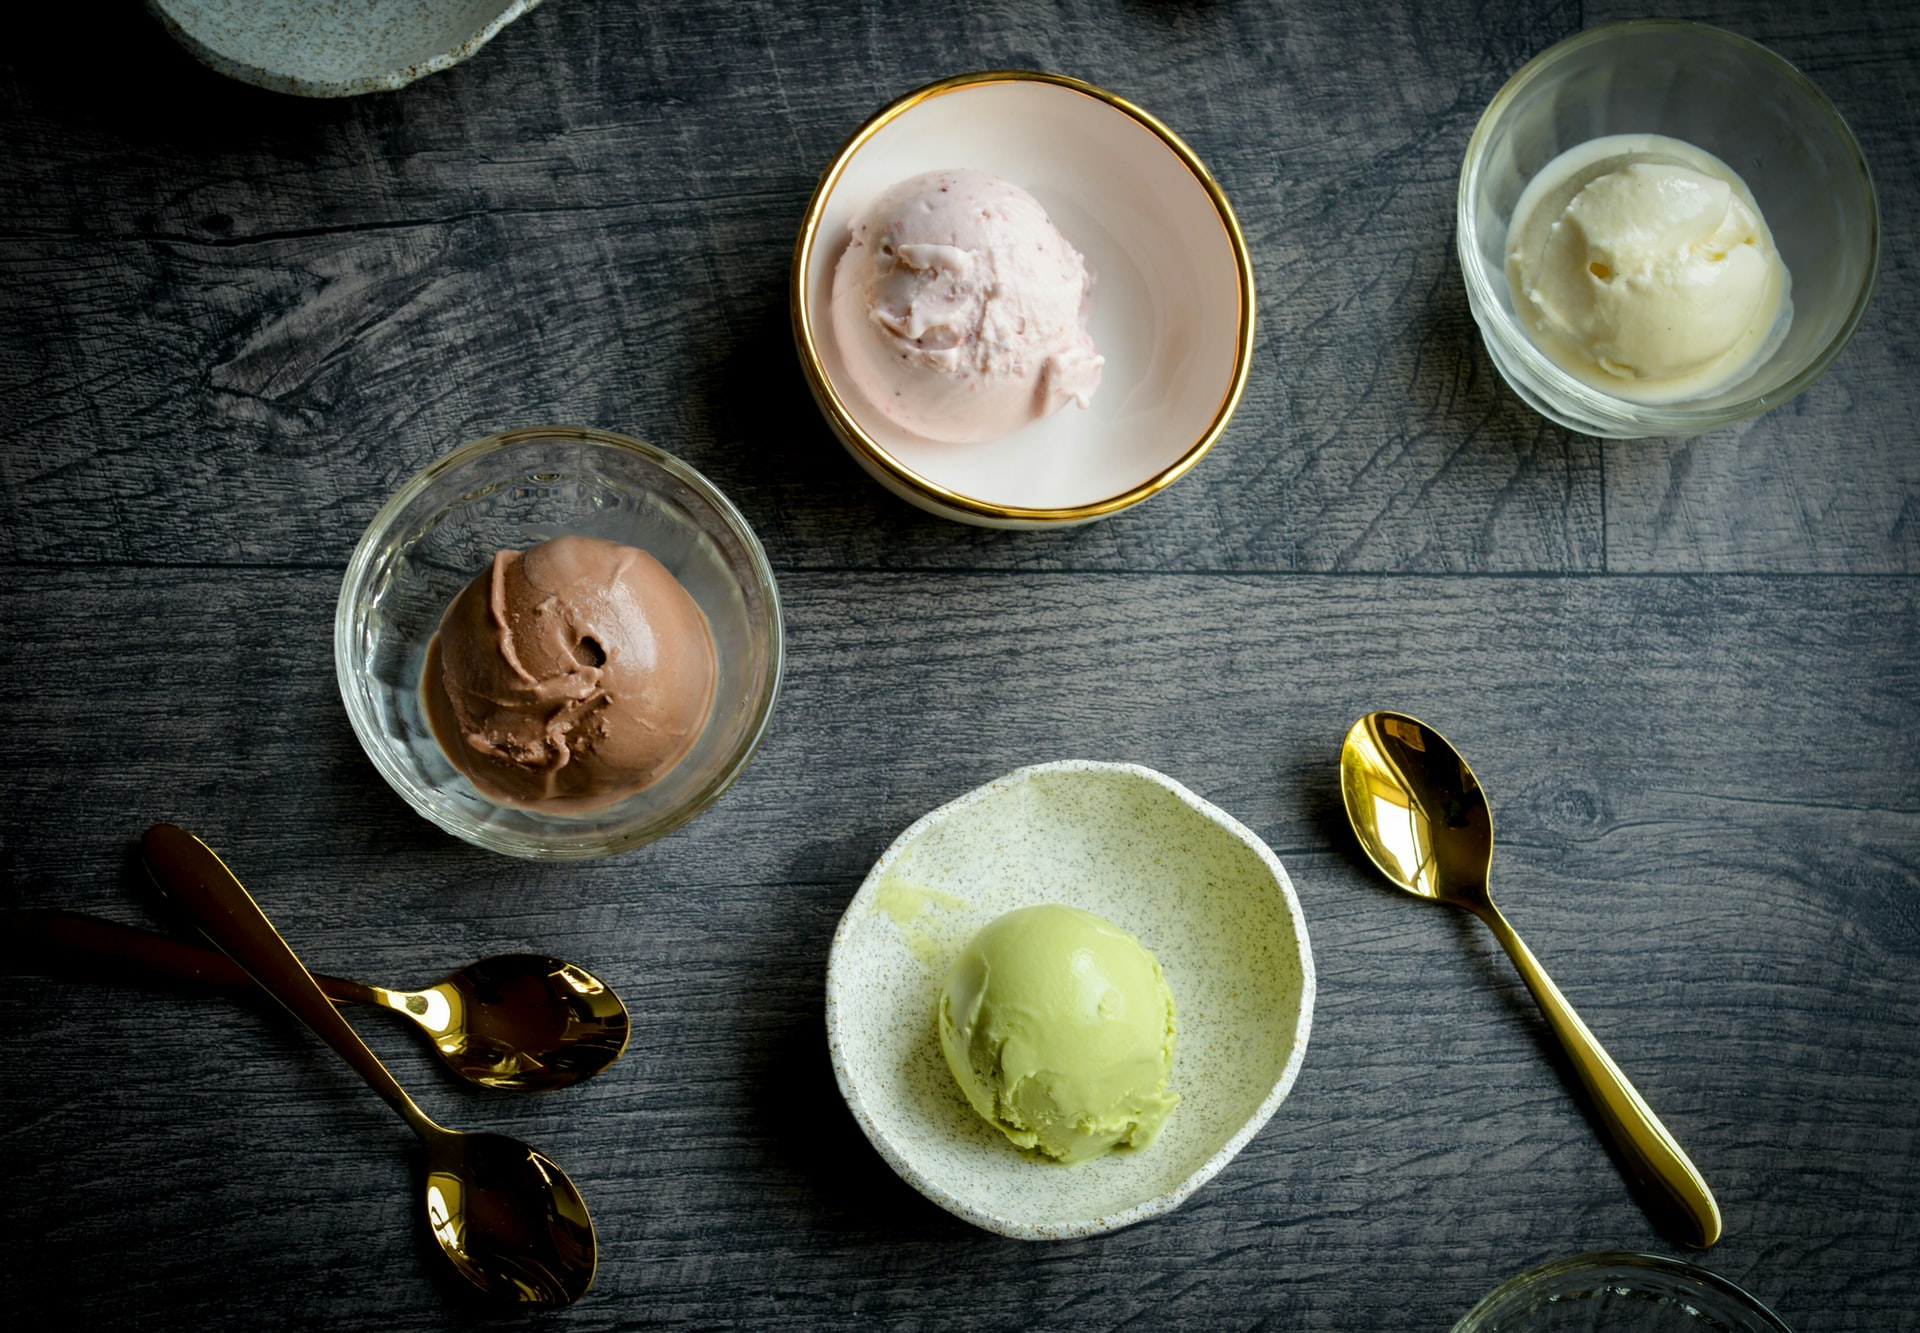 Craving Seasonal Sweets at Your DC Apartment? Order From Jeni's Splendid Ice Creams!